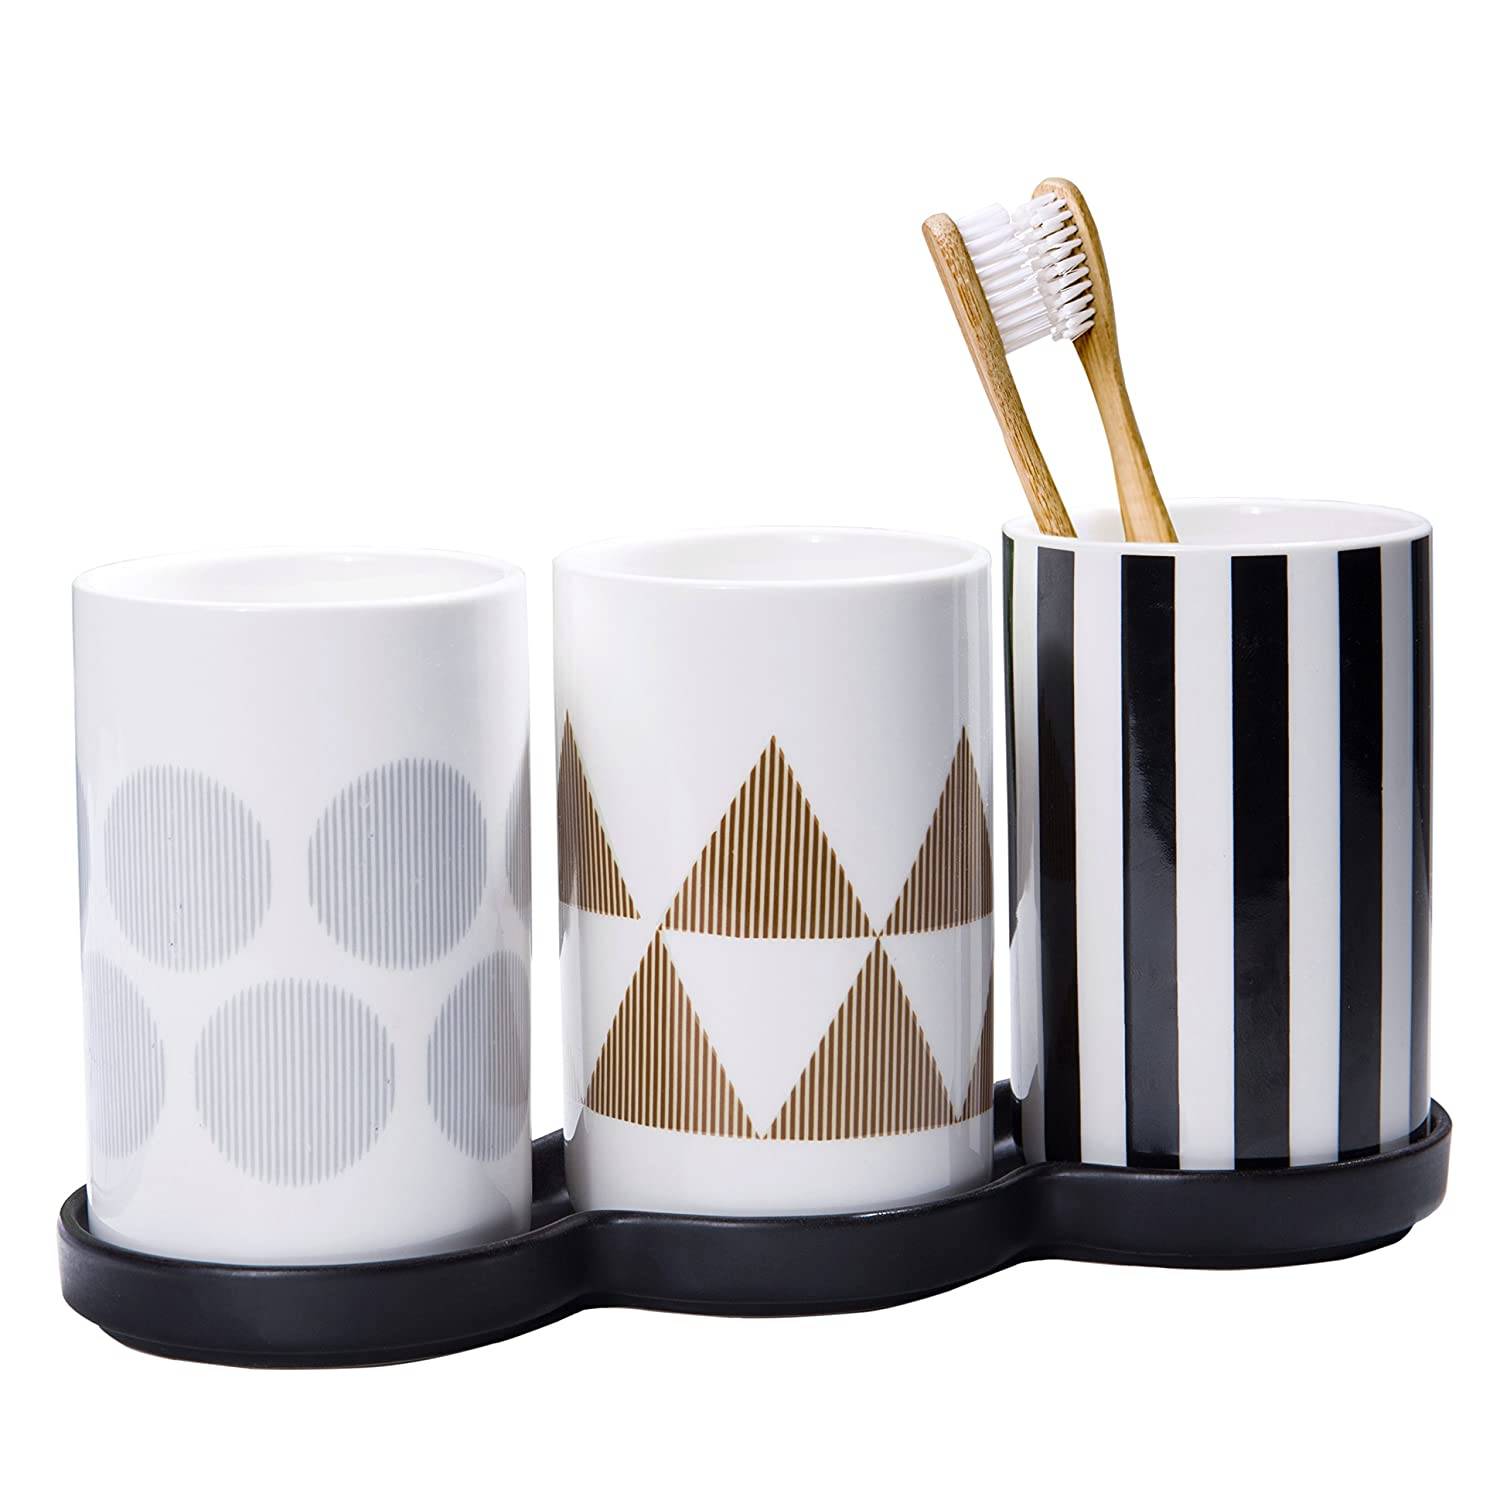 Modern 4-Piece Ceramic Bathroom Set with 2 Rinse Cups, Toothbrush Holder & Display Tray